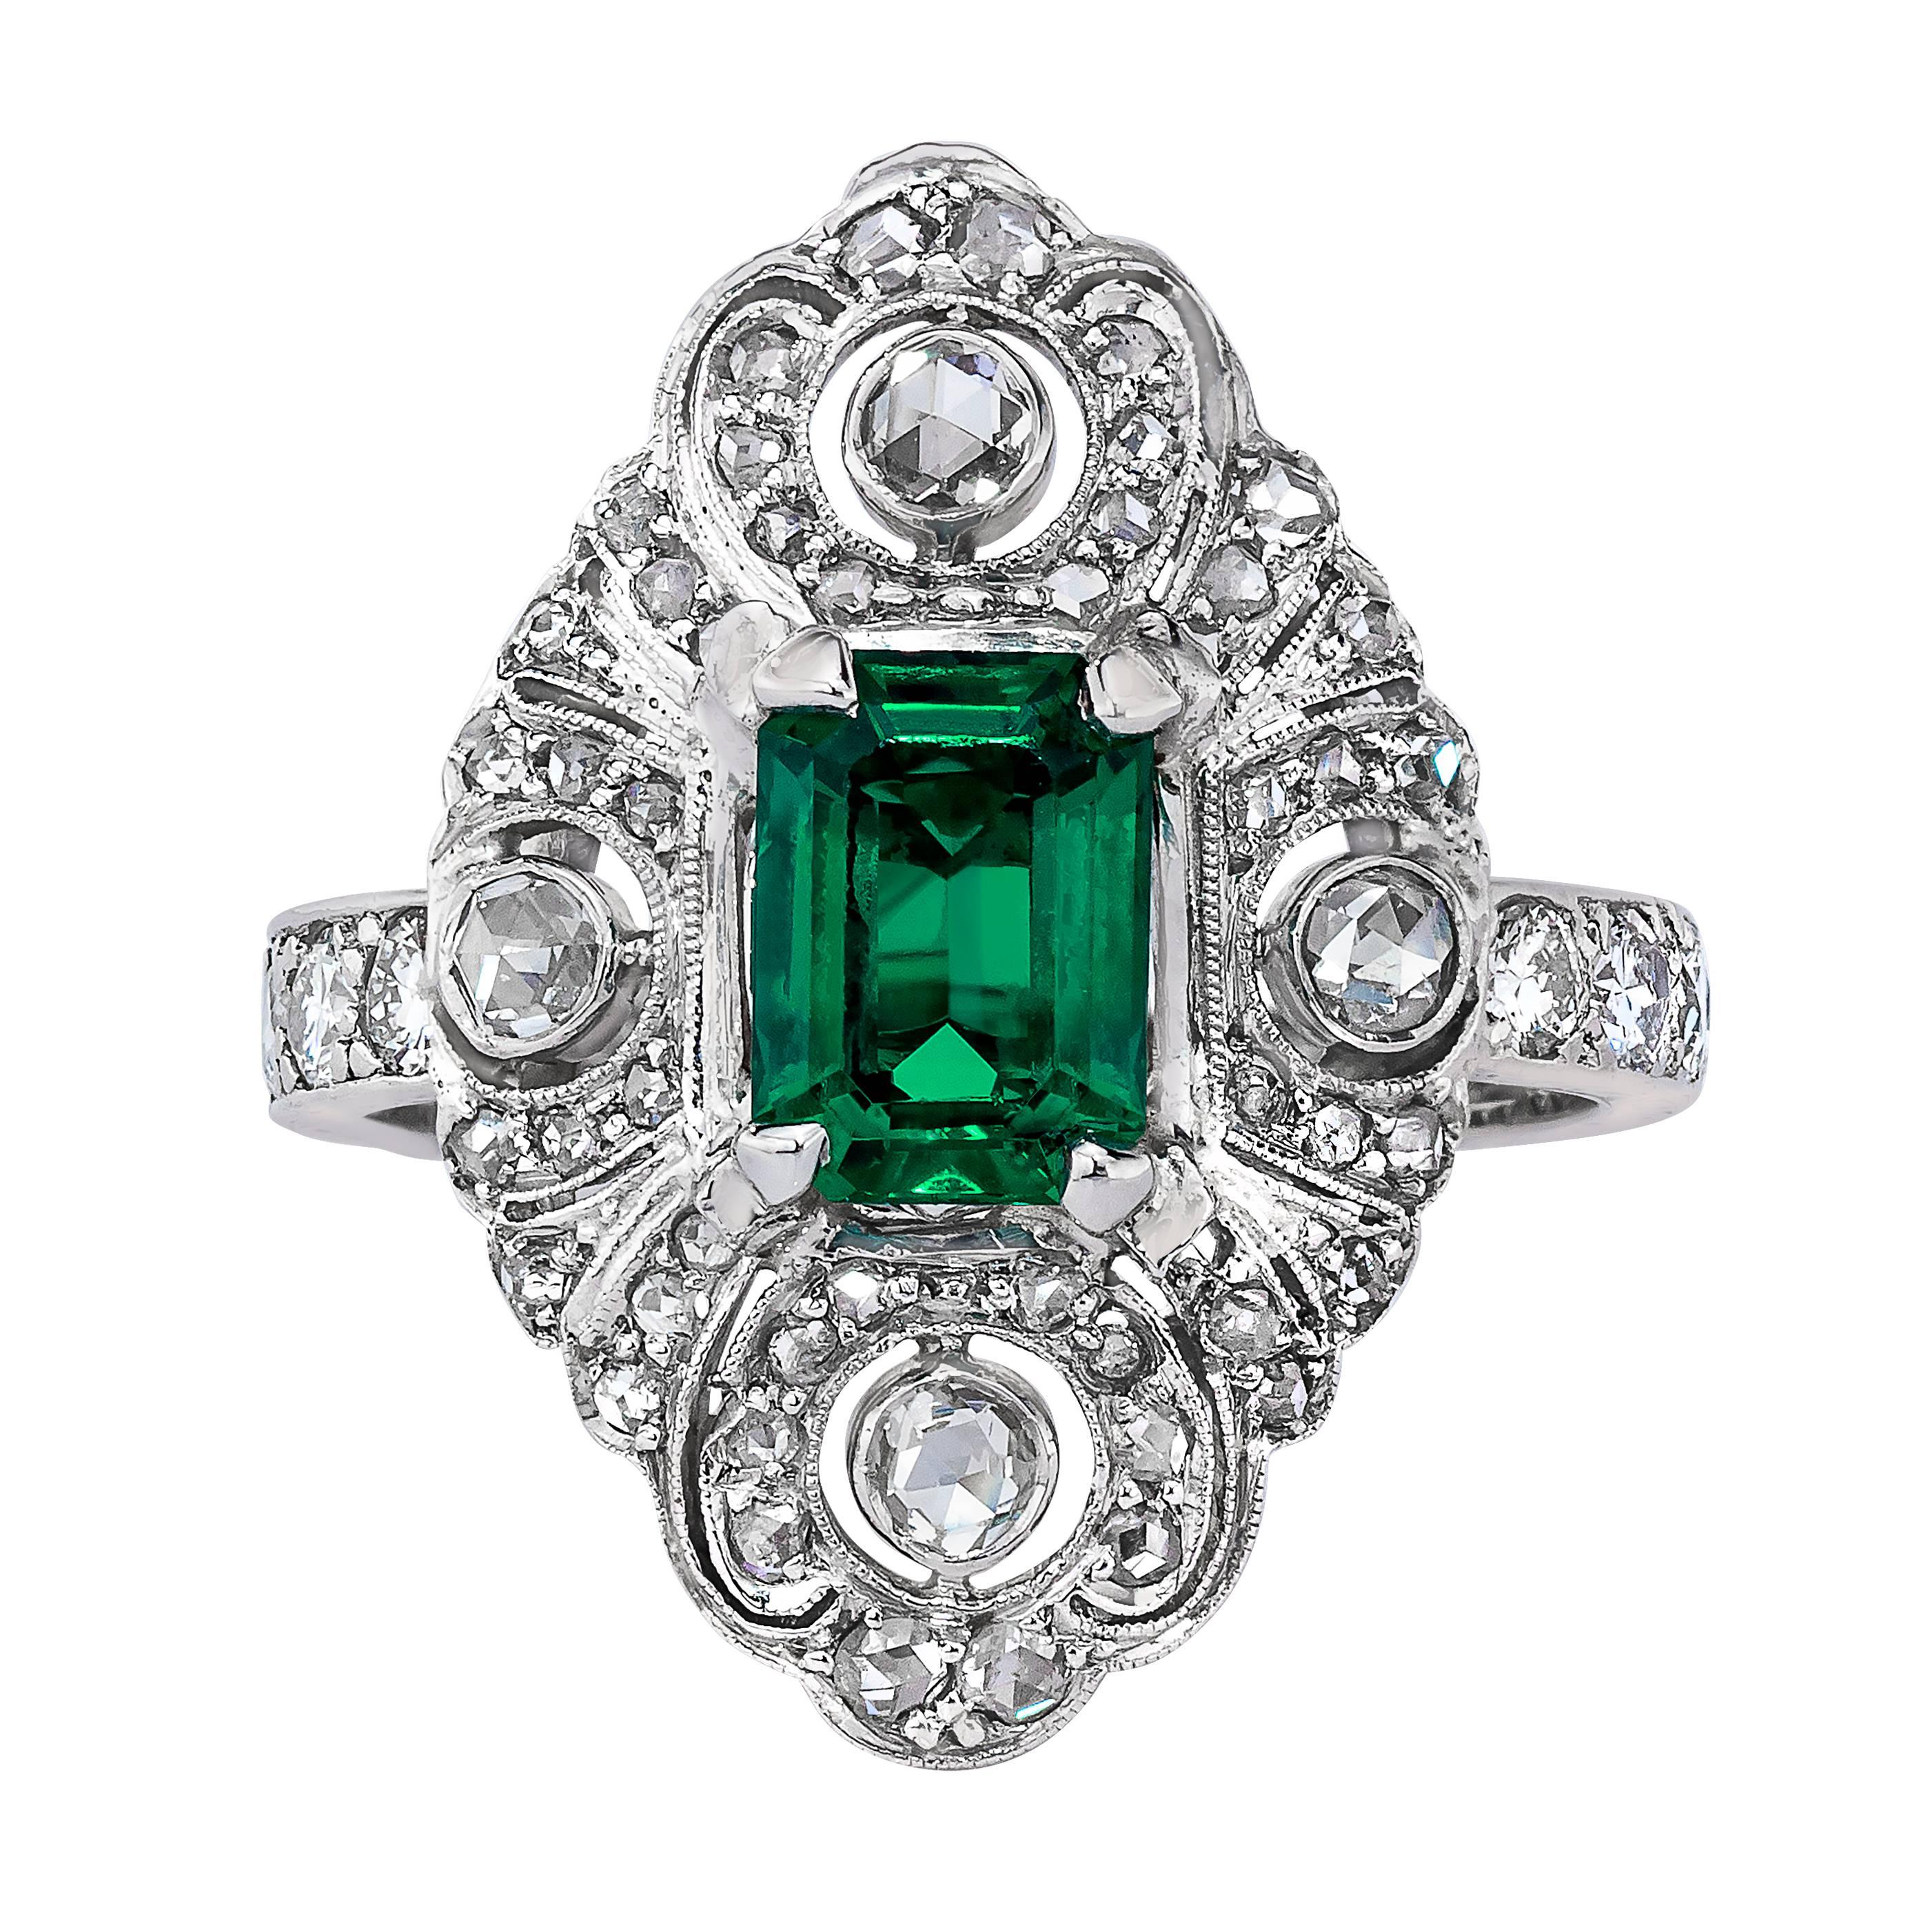 diamond loading one kind moda of by emeral emerald bayco large ring operandi rings green a